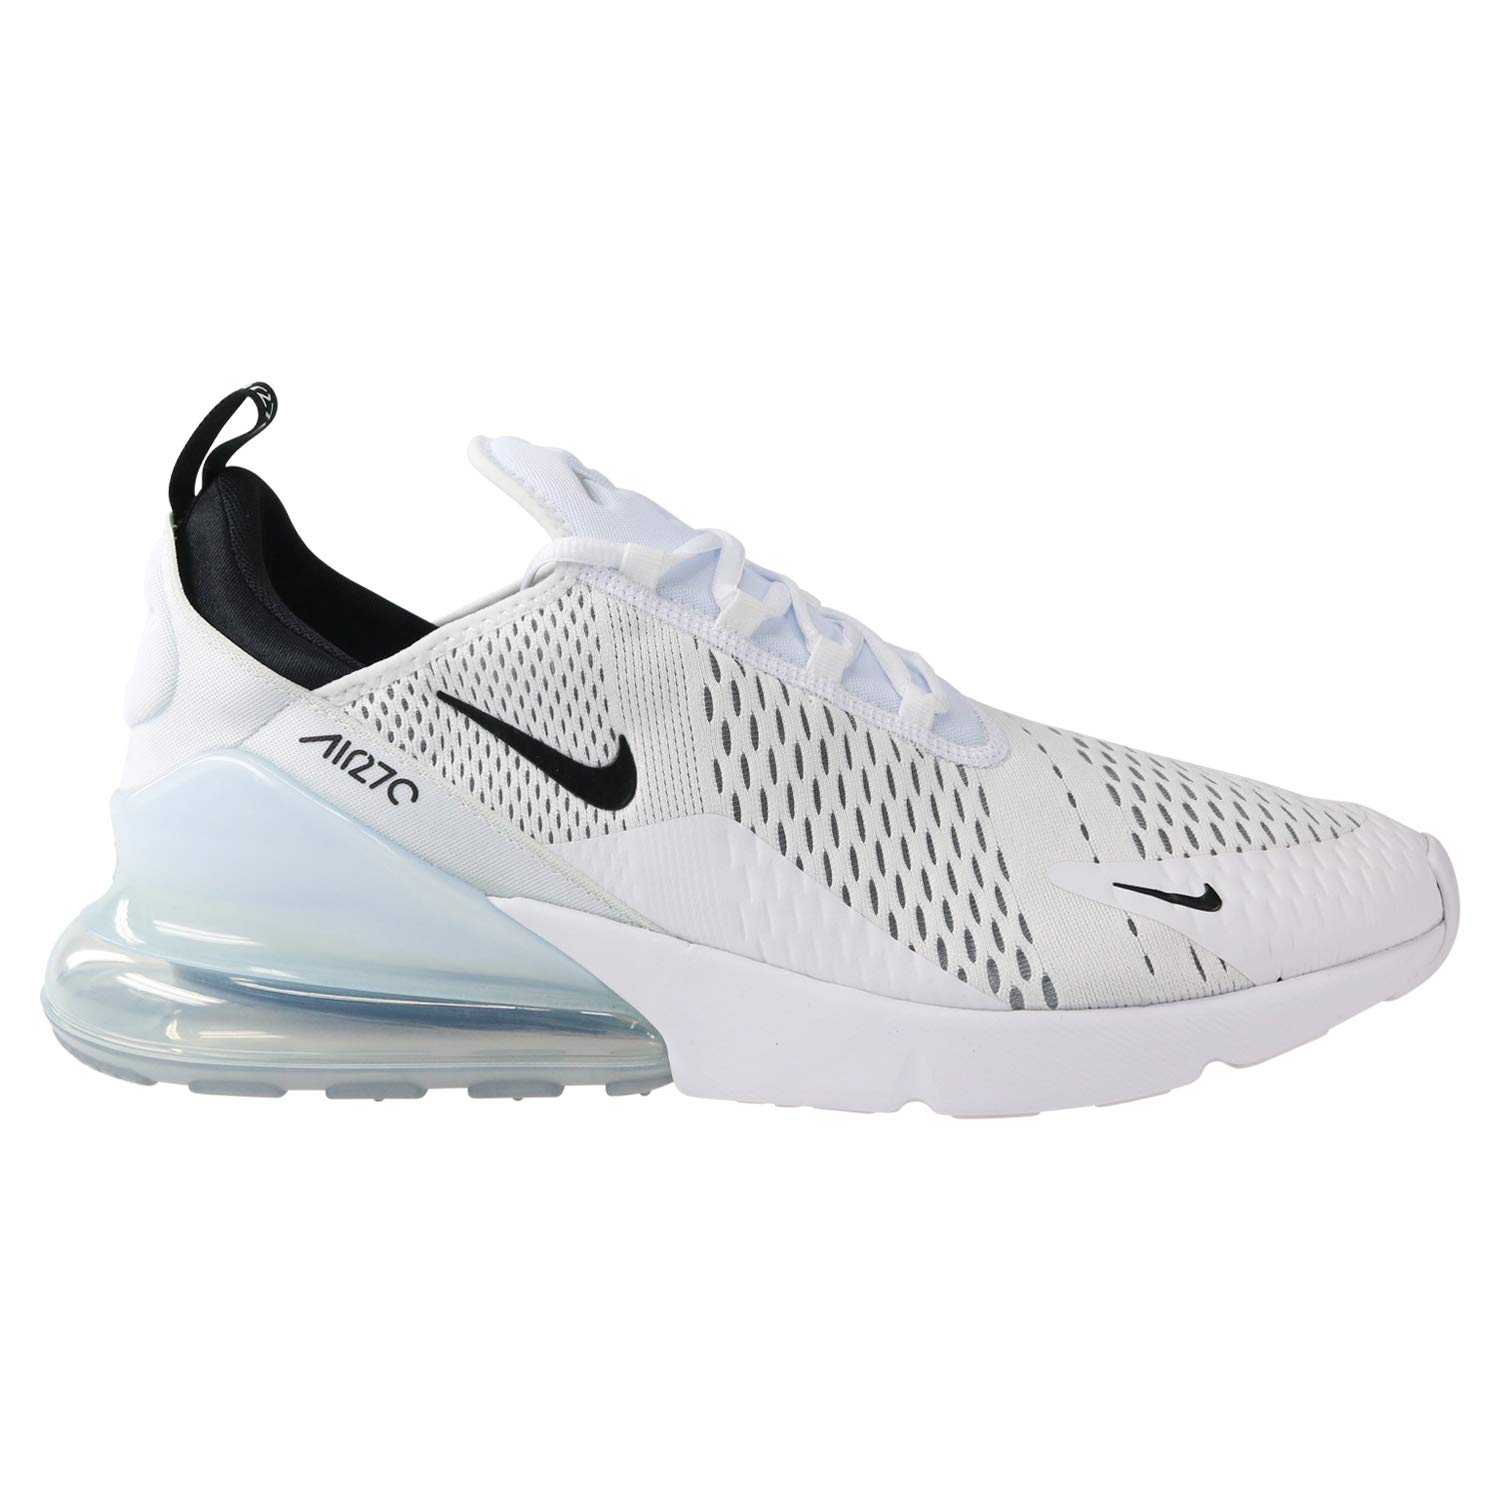 278f9c2132b74e Galleon - Nike Air Max 270 Men s Running Shoes White Black-White AH8050-100  (11.5 D(M) US)